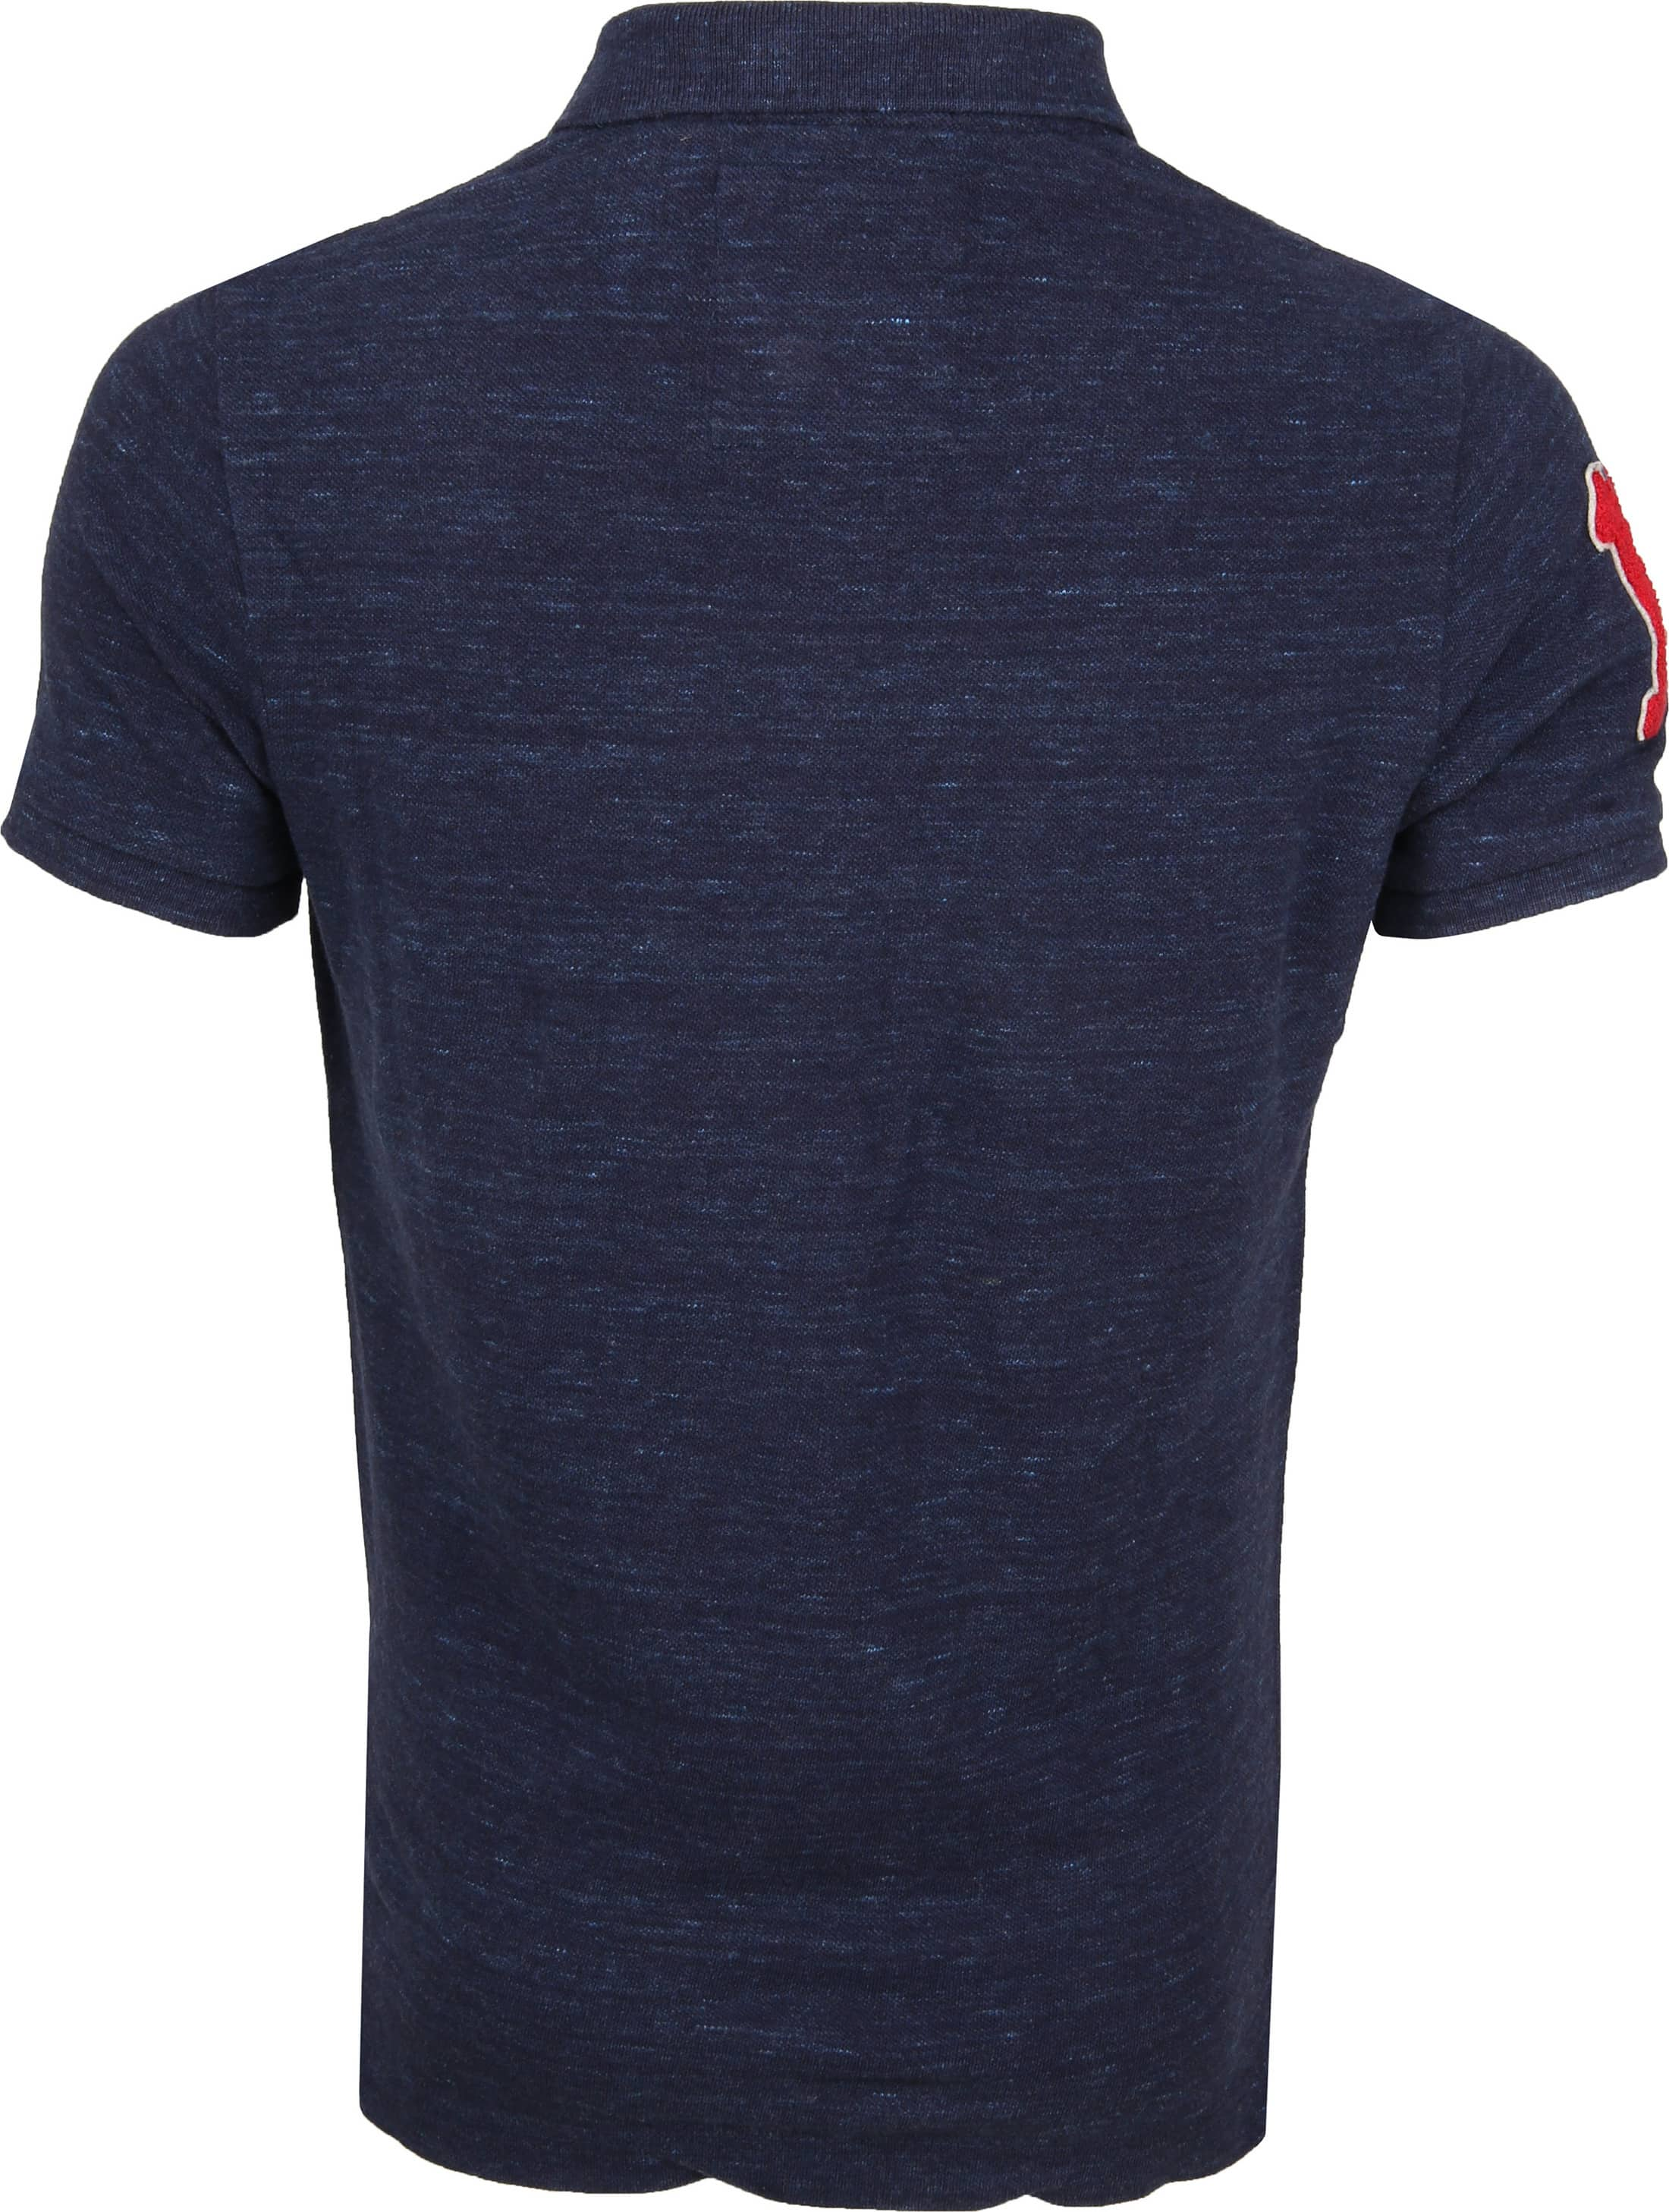 Superdry Classic Polo Navy foto 4